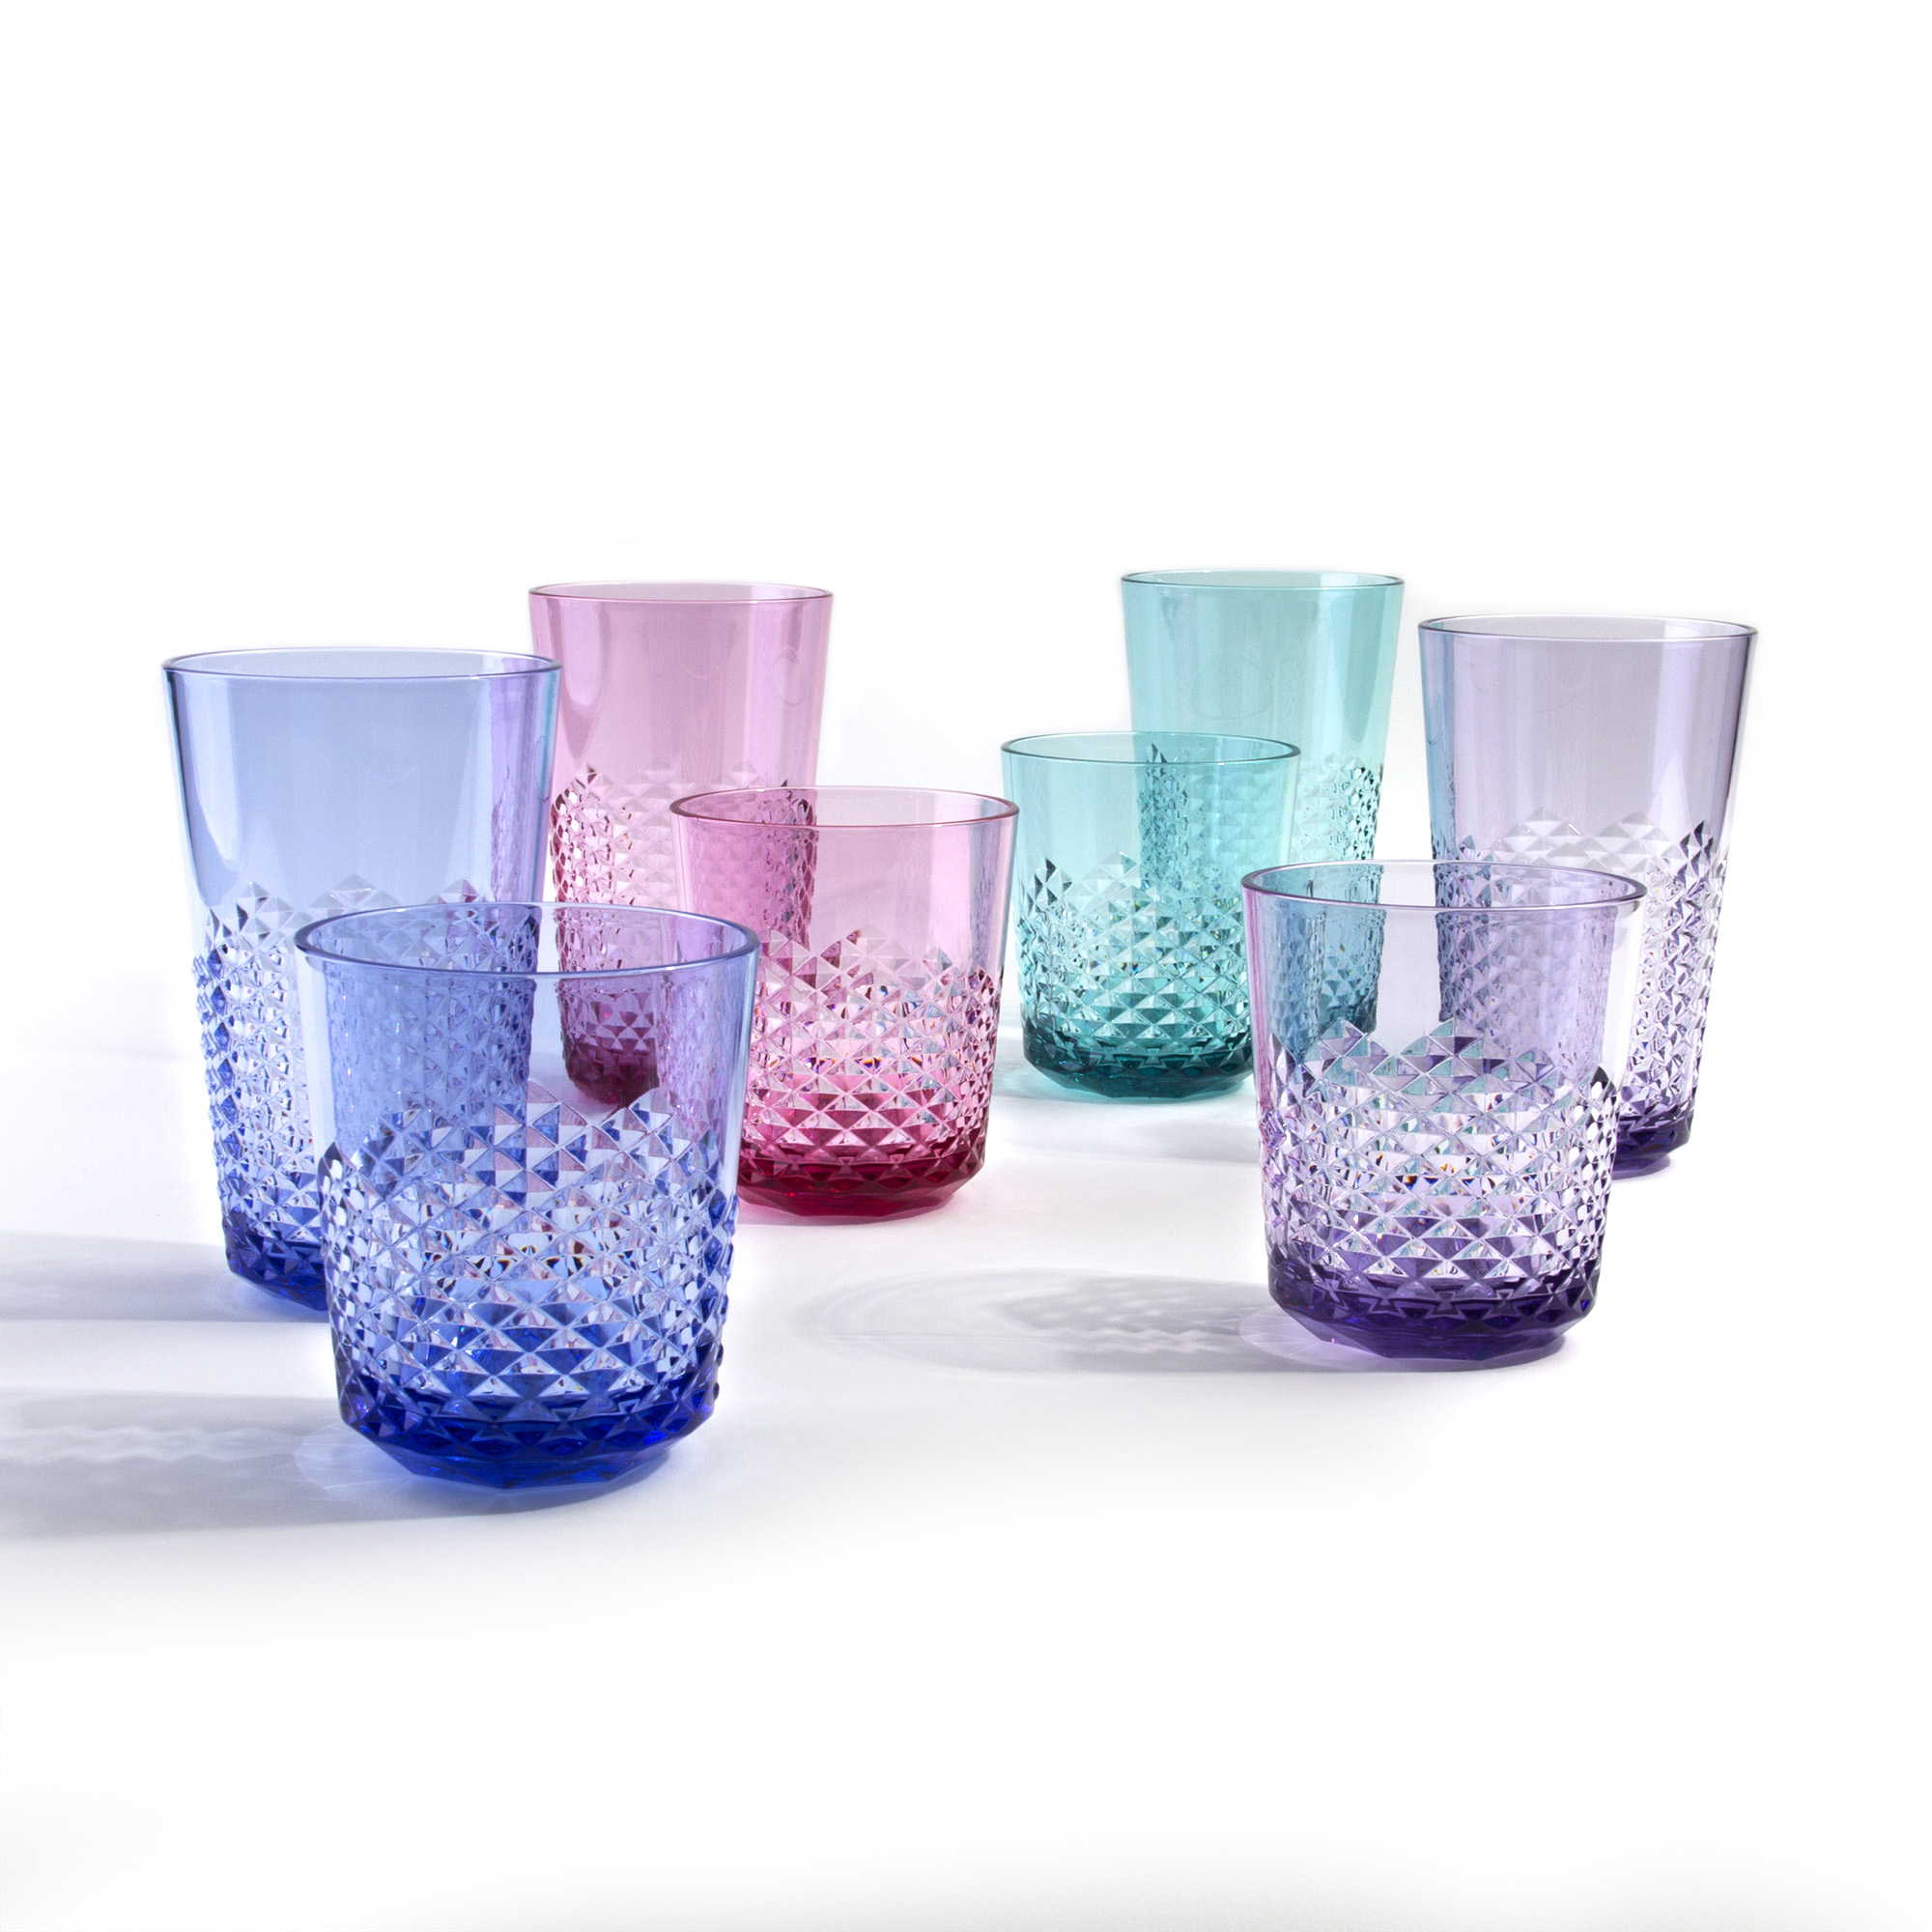 Cupture Diamond Plastic Tumblers, 24 oz   14 oz, 8-Pack (Assorted Colors) by Cupture